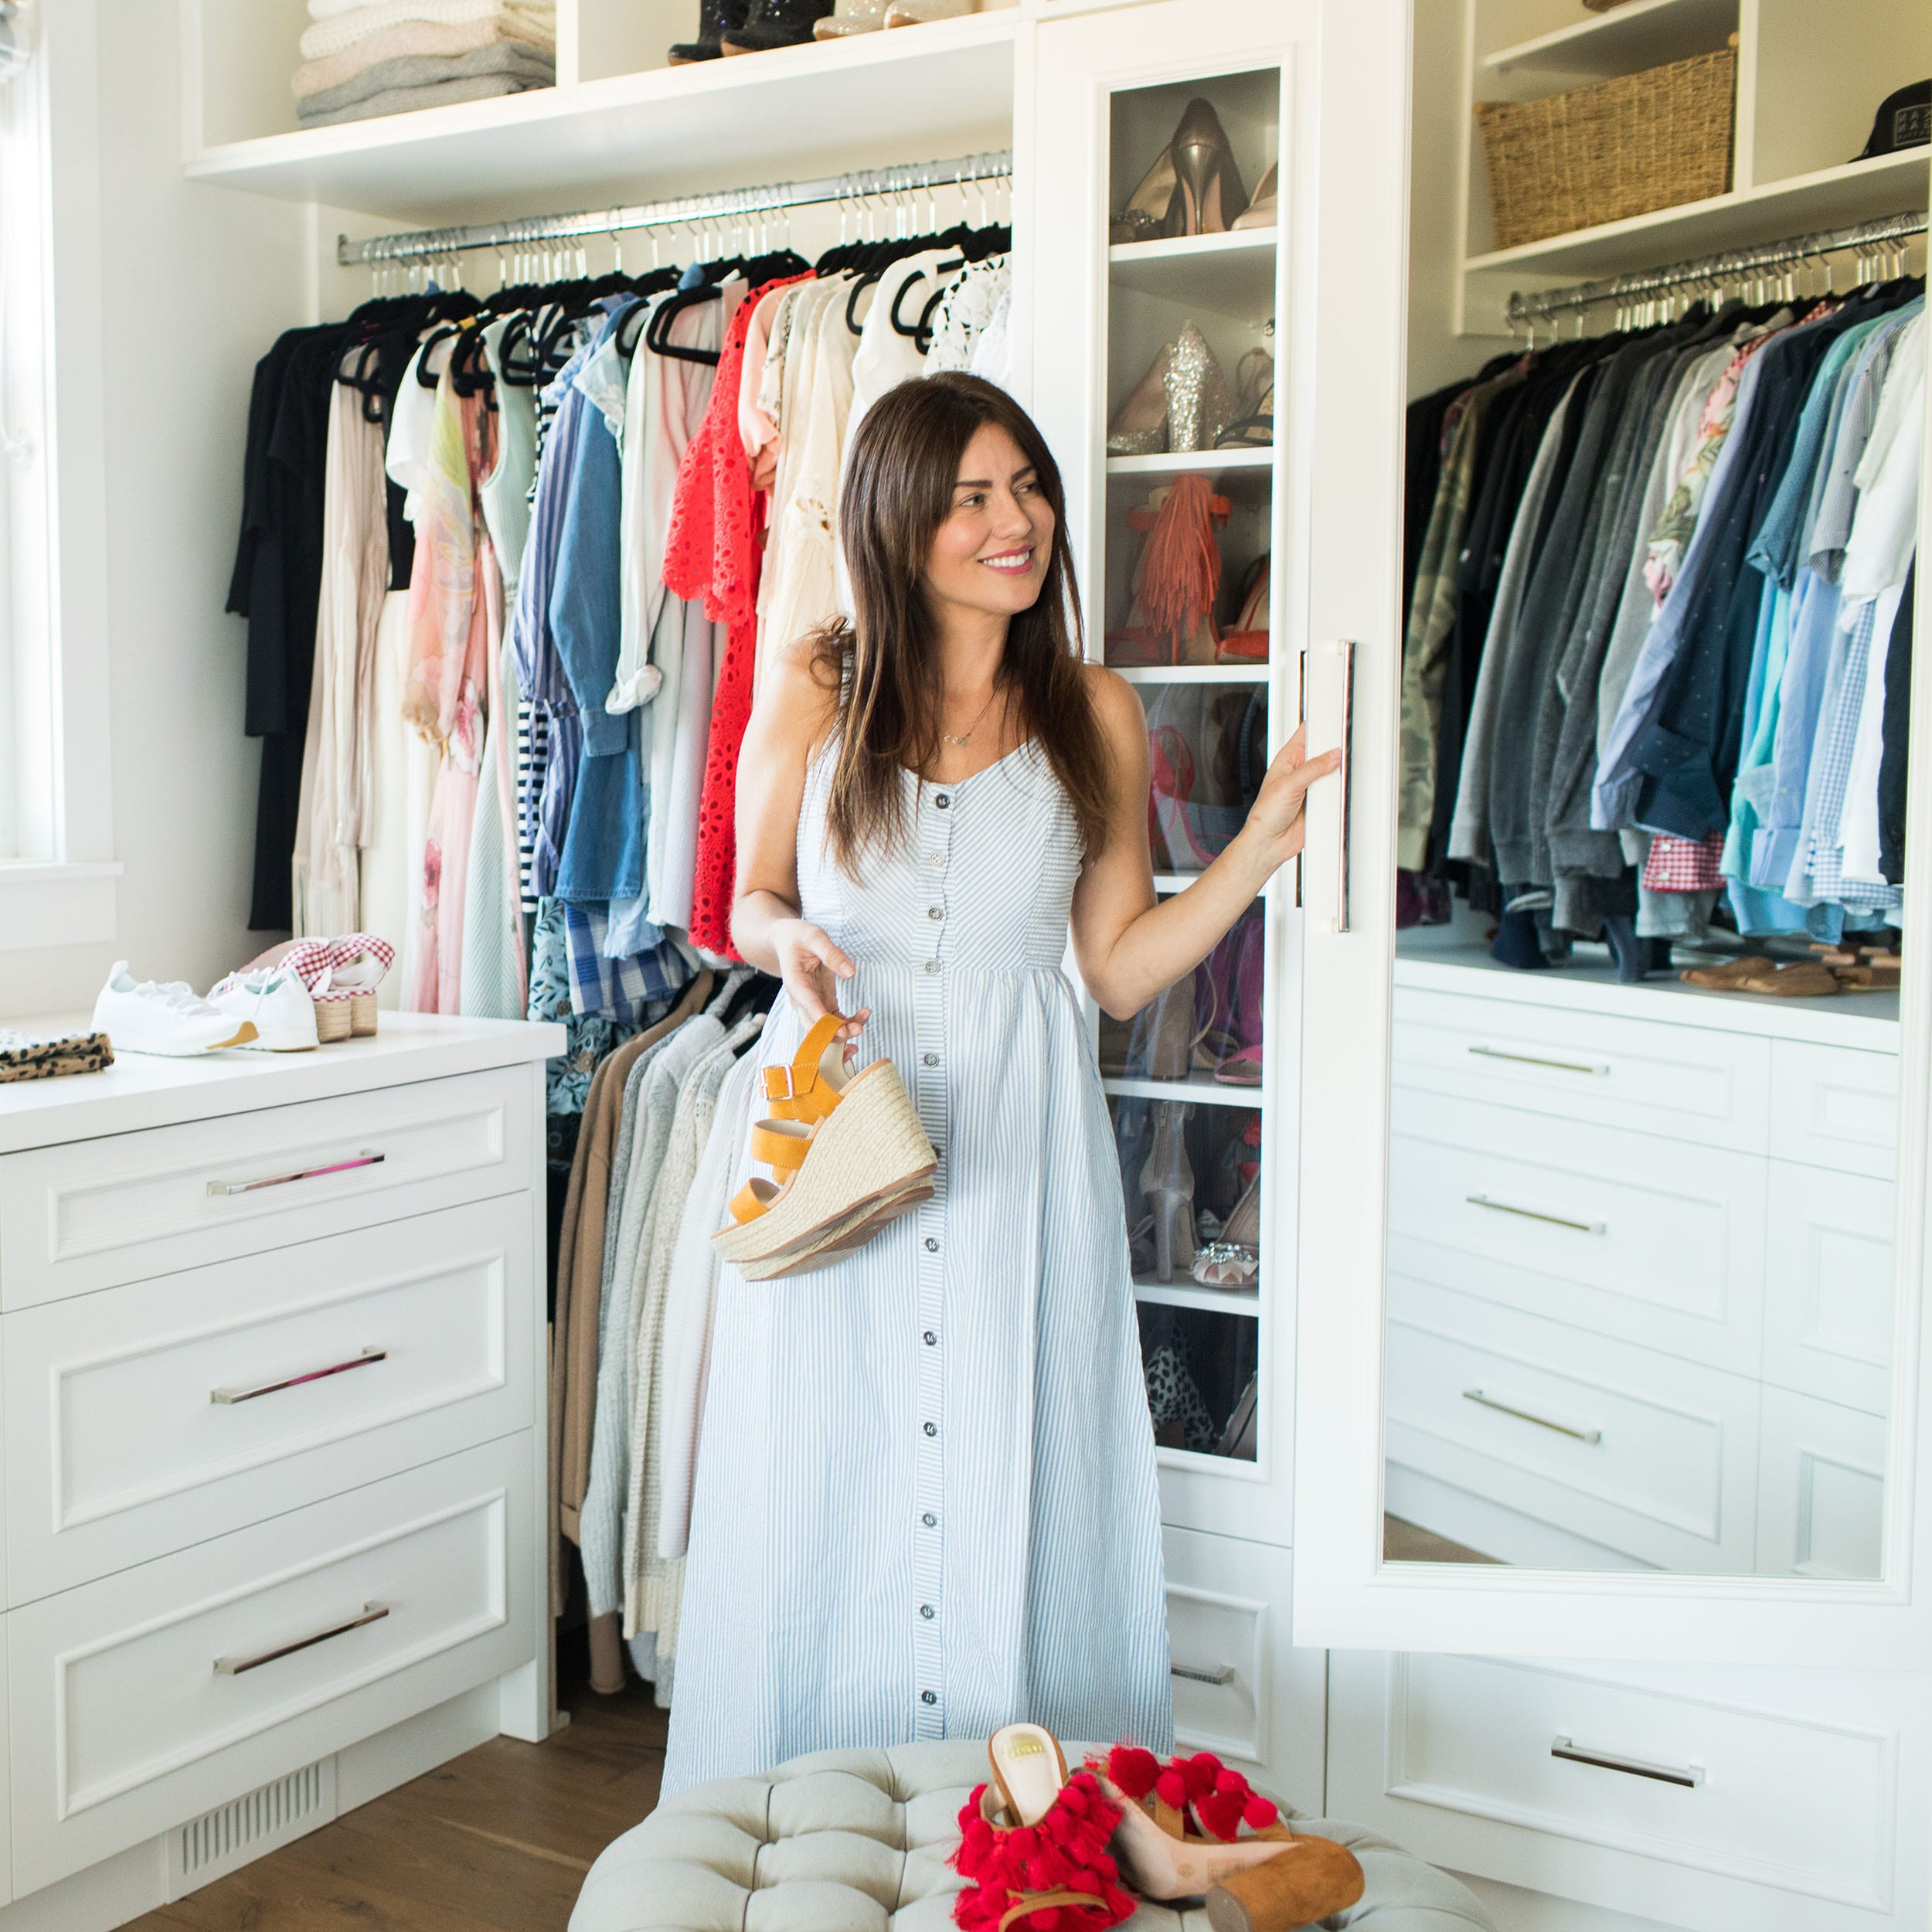 Jillian Harris 3 Fun (And Eco-Friendly!) Ways to Refresh Your Closet This Fall